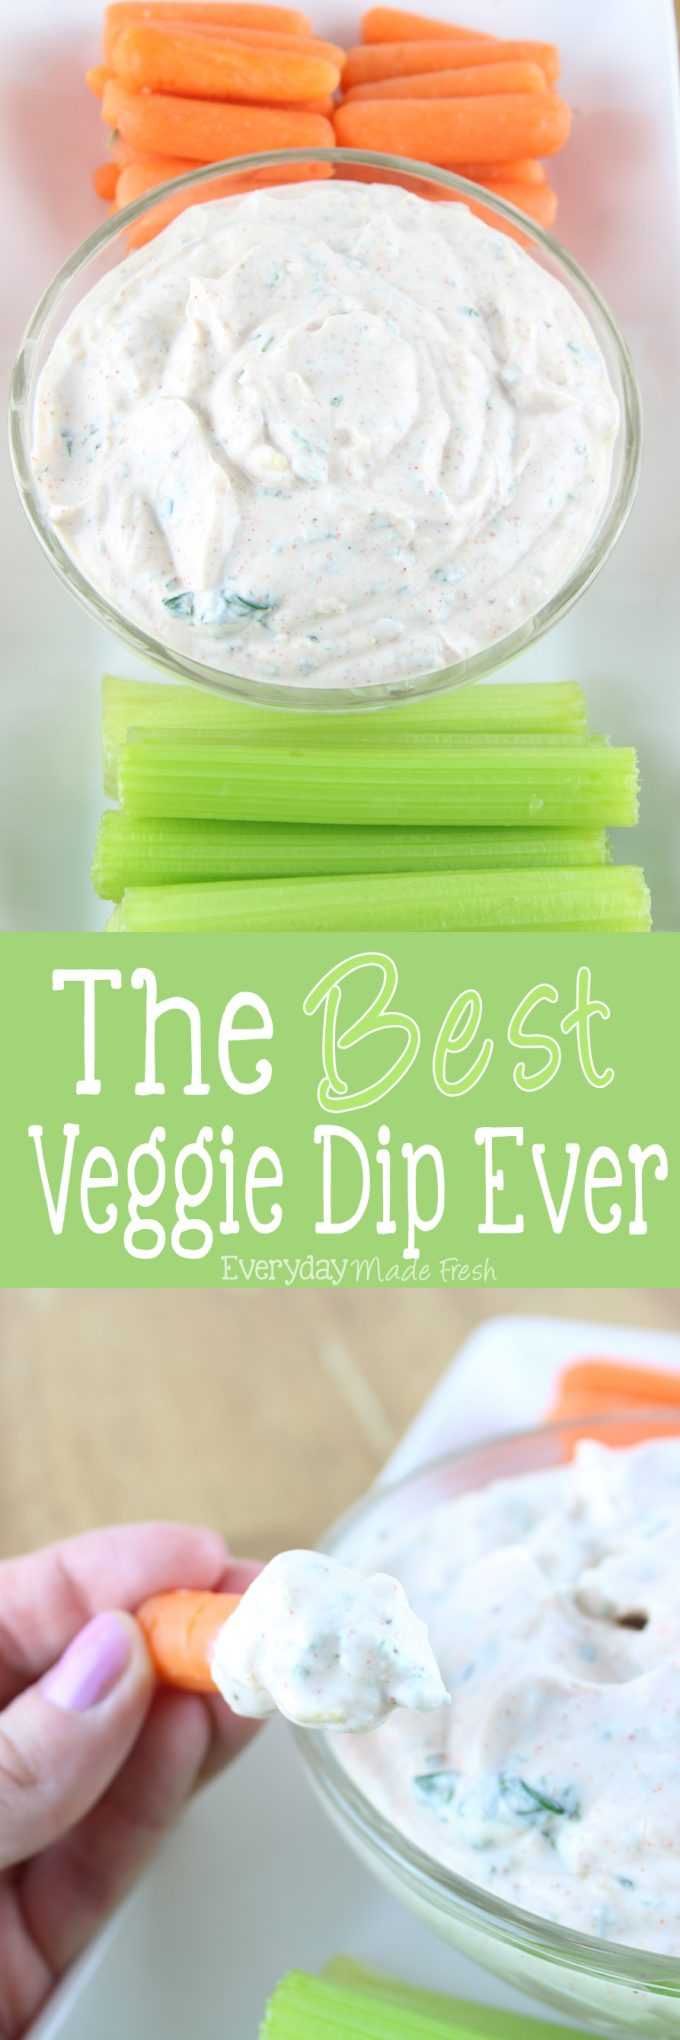 Looking for the perfect dip for that bag of carrots sticks or cut celery? I've got the answer for you with The Best Veggie Dip Ever! It's perfect for carrots, celery, strips of bell pepper, and even plain potato chips! | EverydayMadeFresh.com